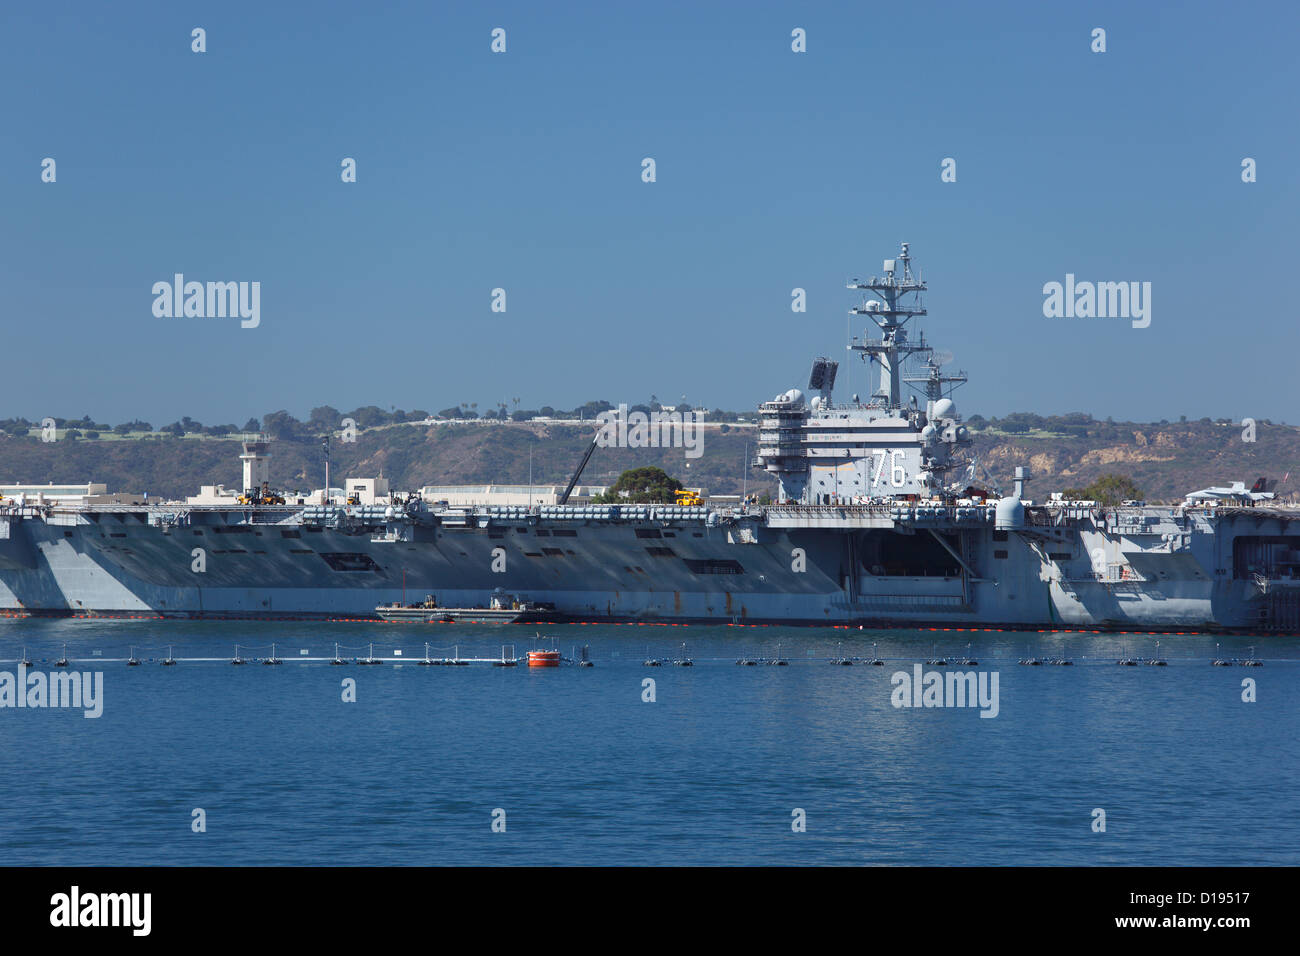 USS Ronald Reagan aircraft carrier in San Diego, California, USA. - Stock Image